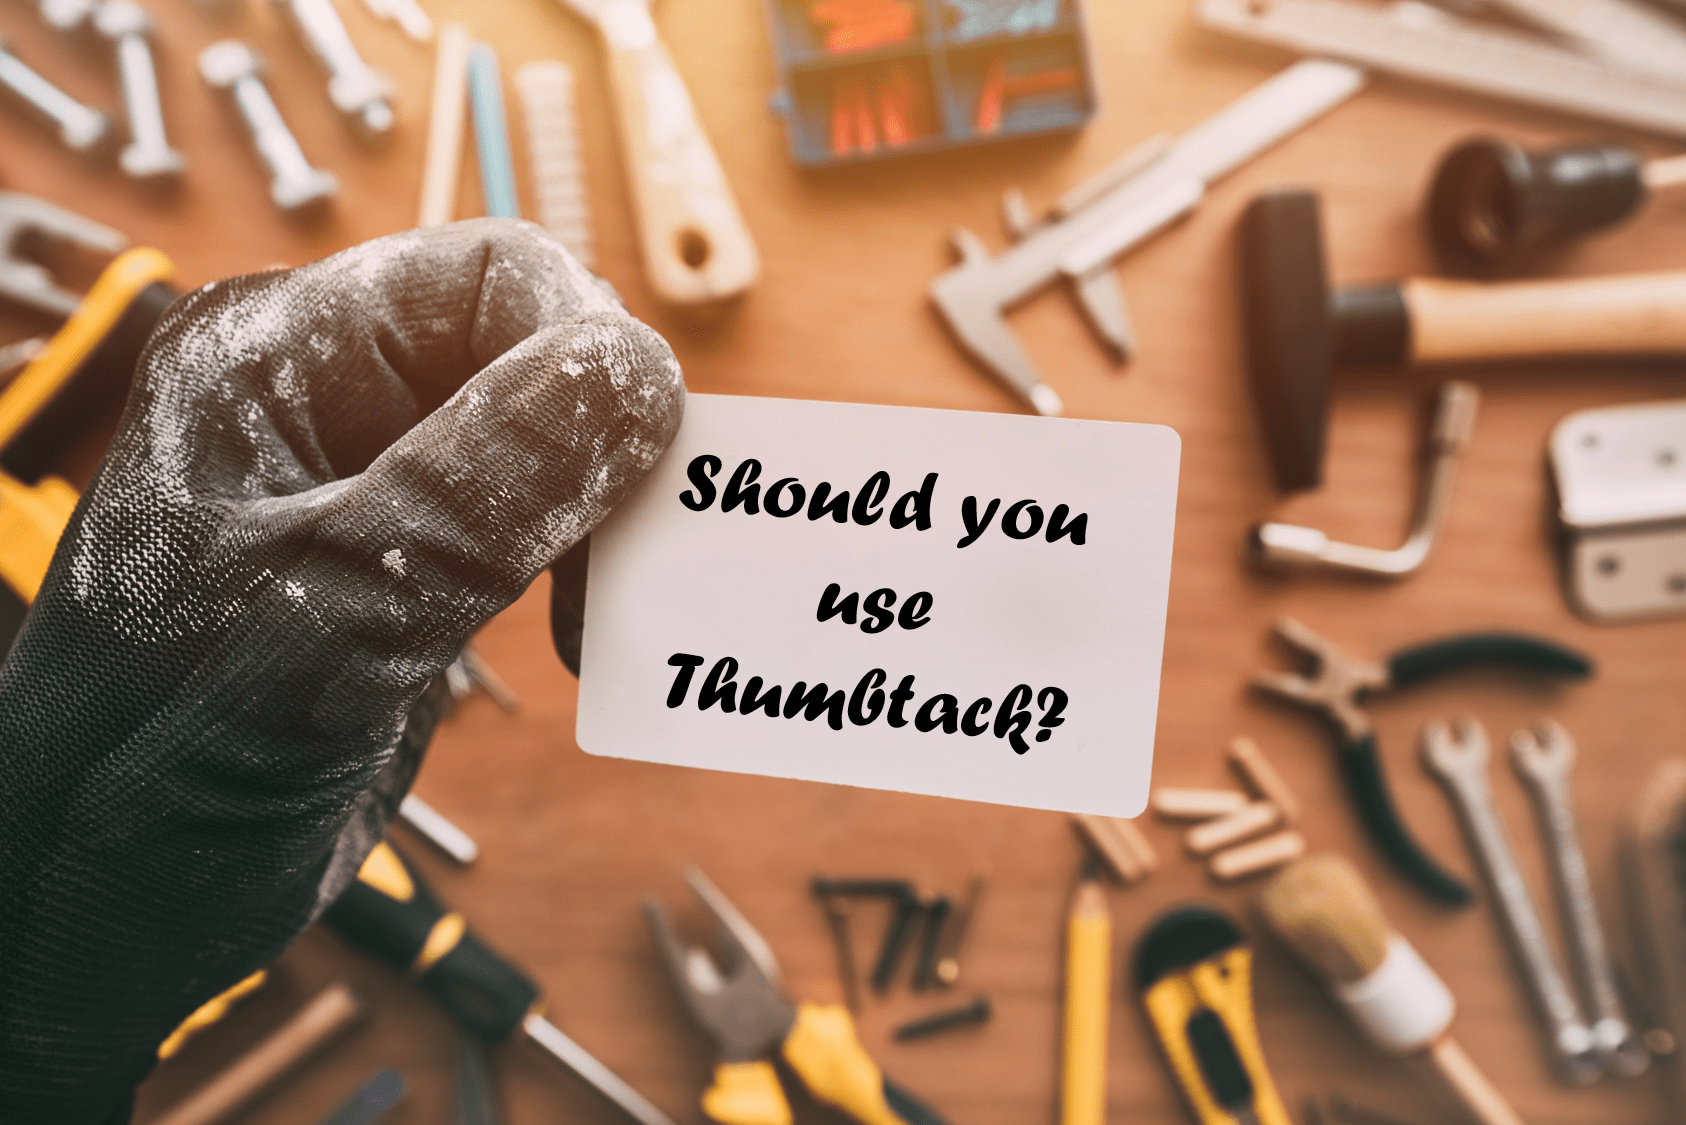 Is Thumbtack worth it if you're a contractor?